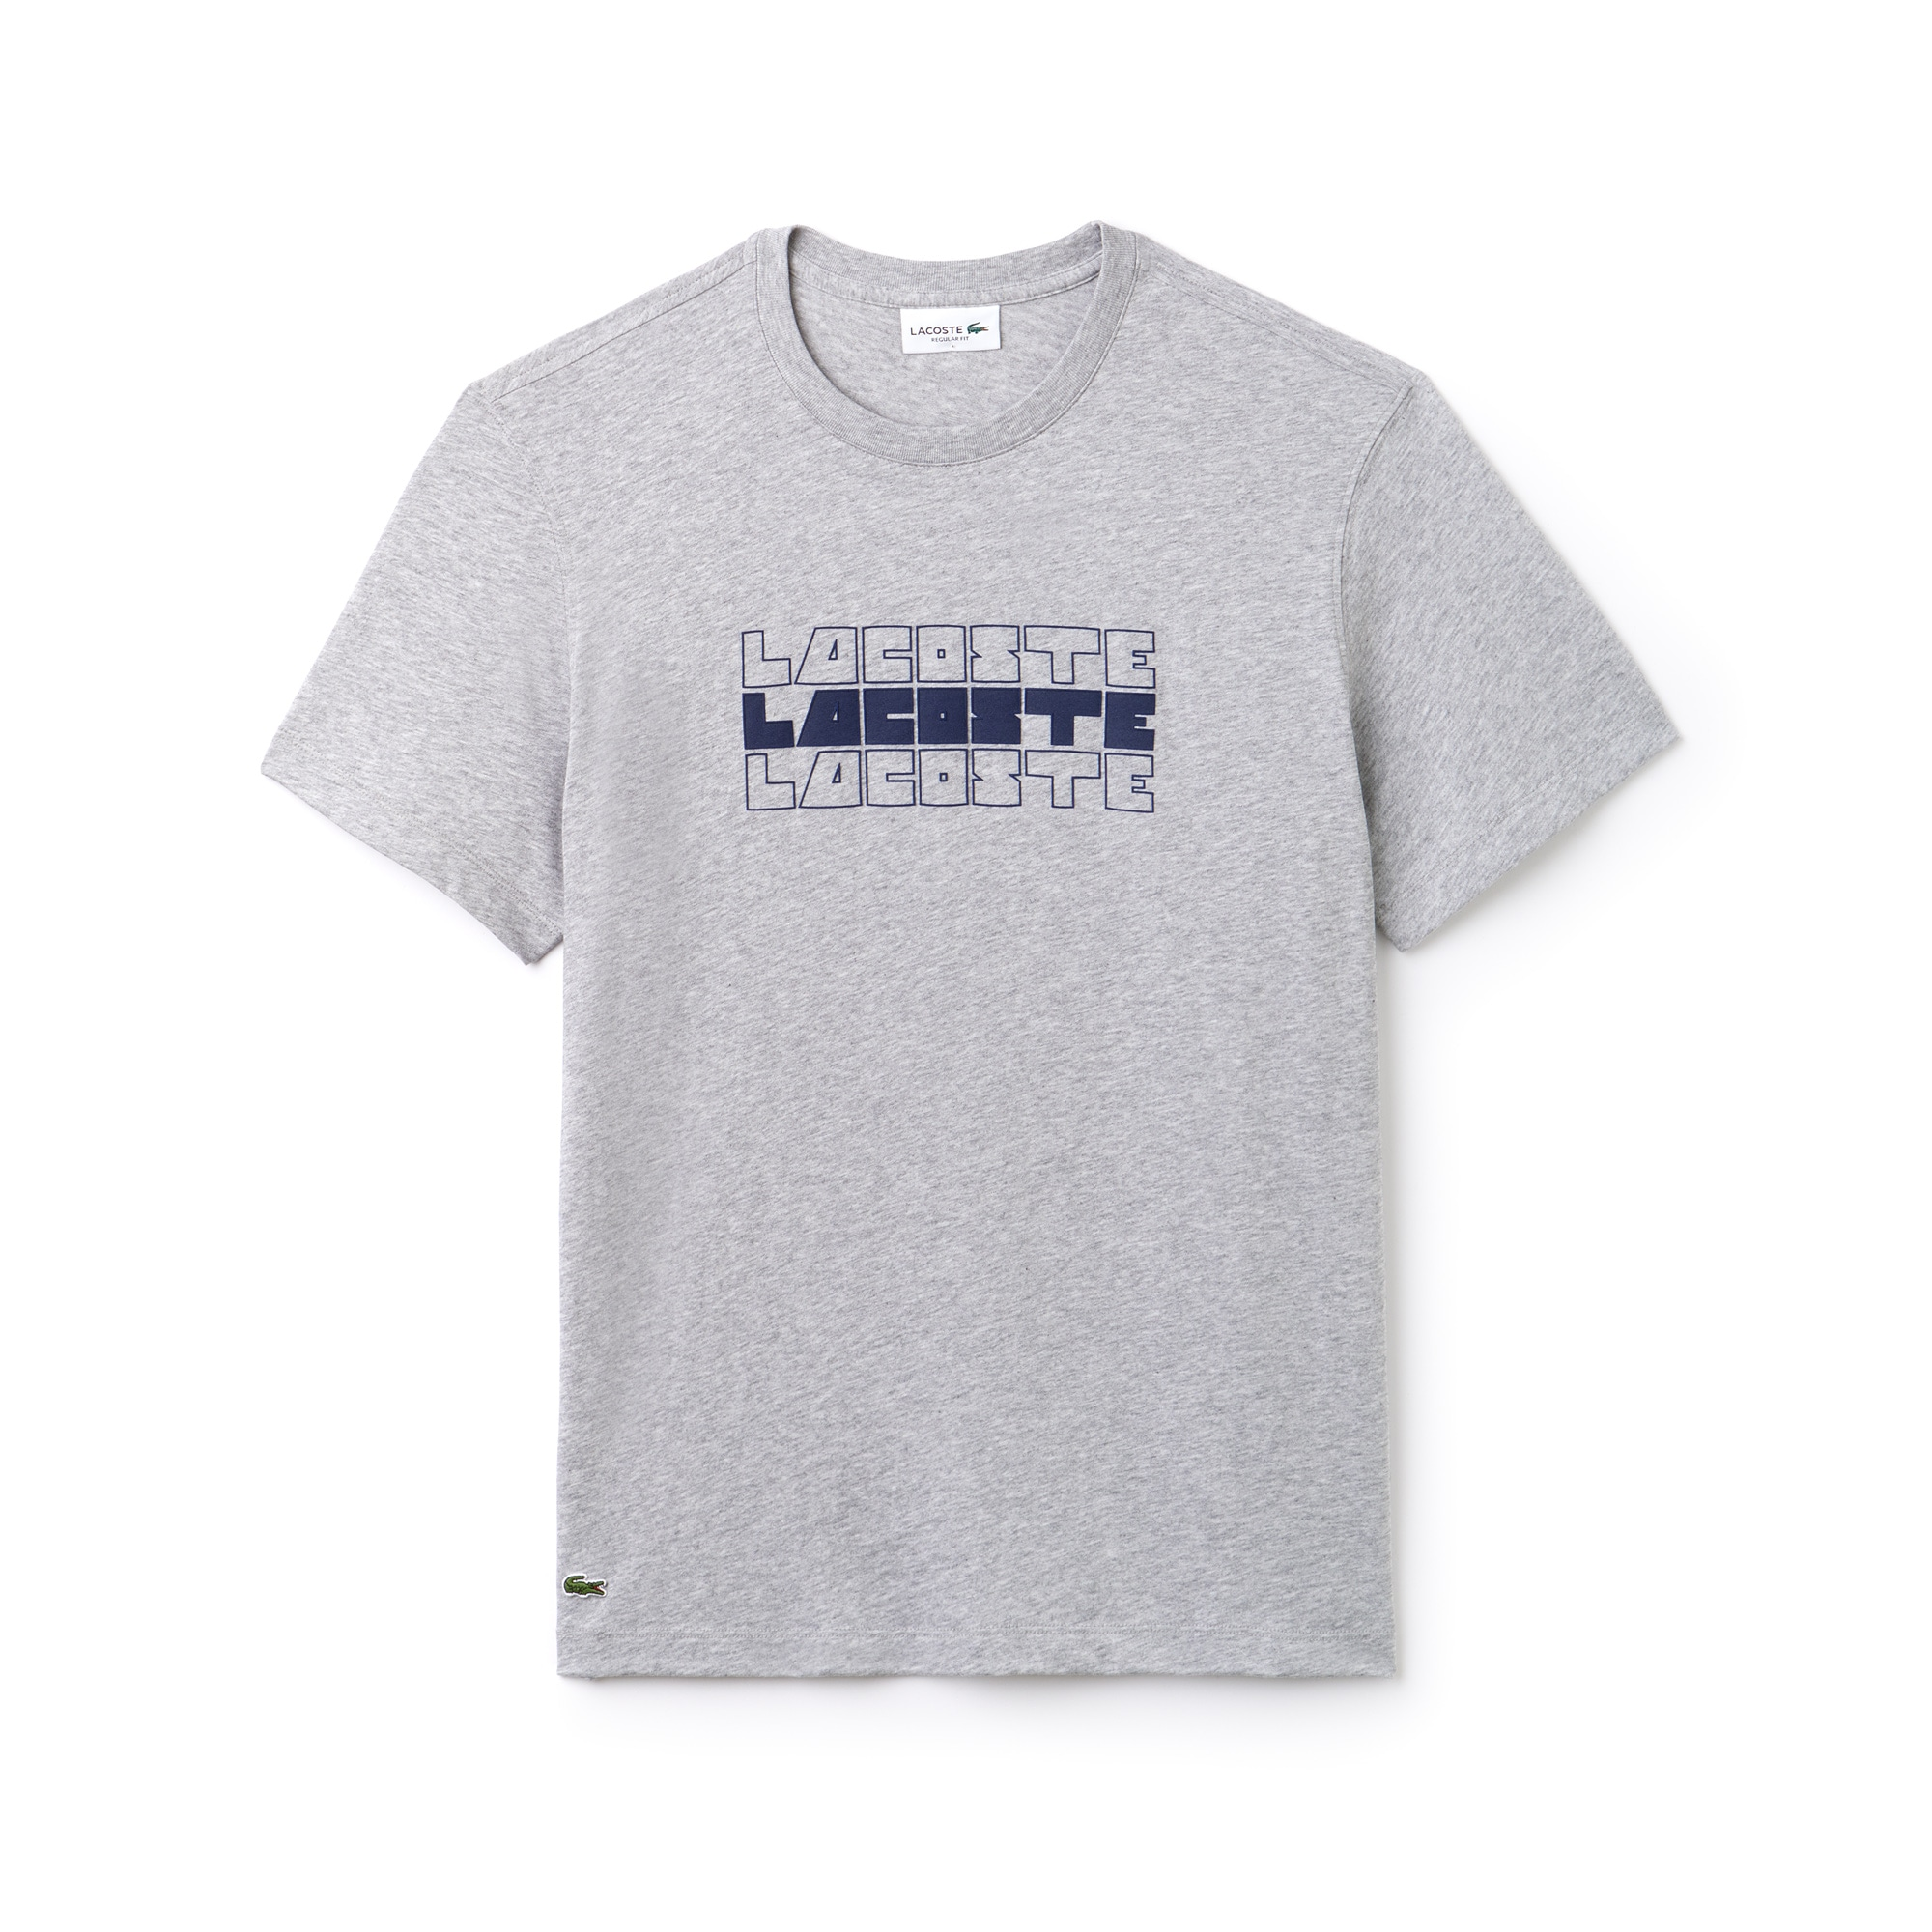 T-Shirt col rond avec marquage Lacoste